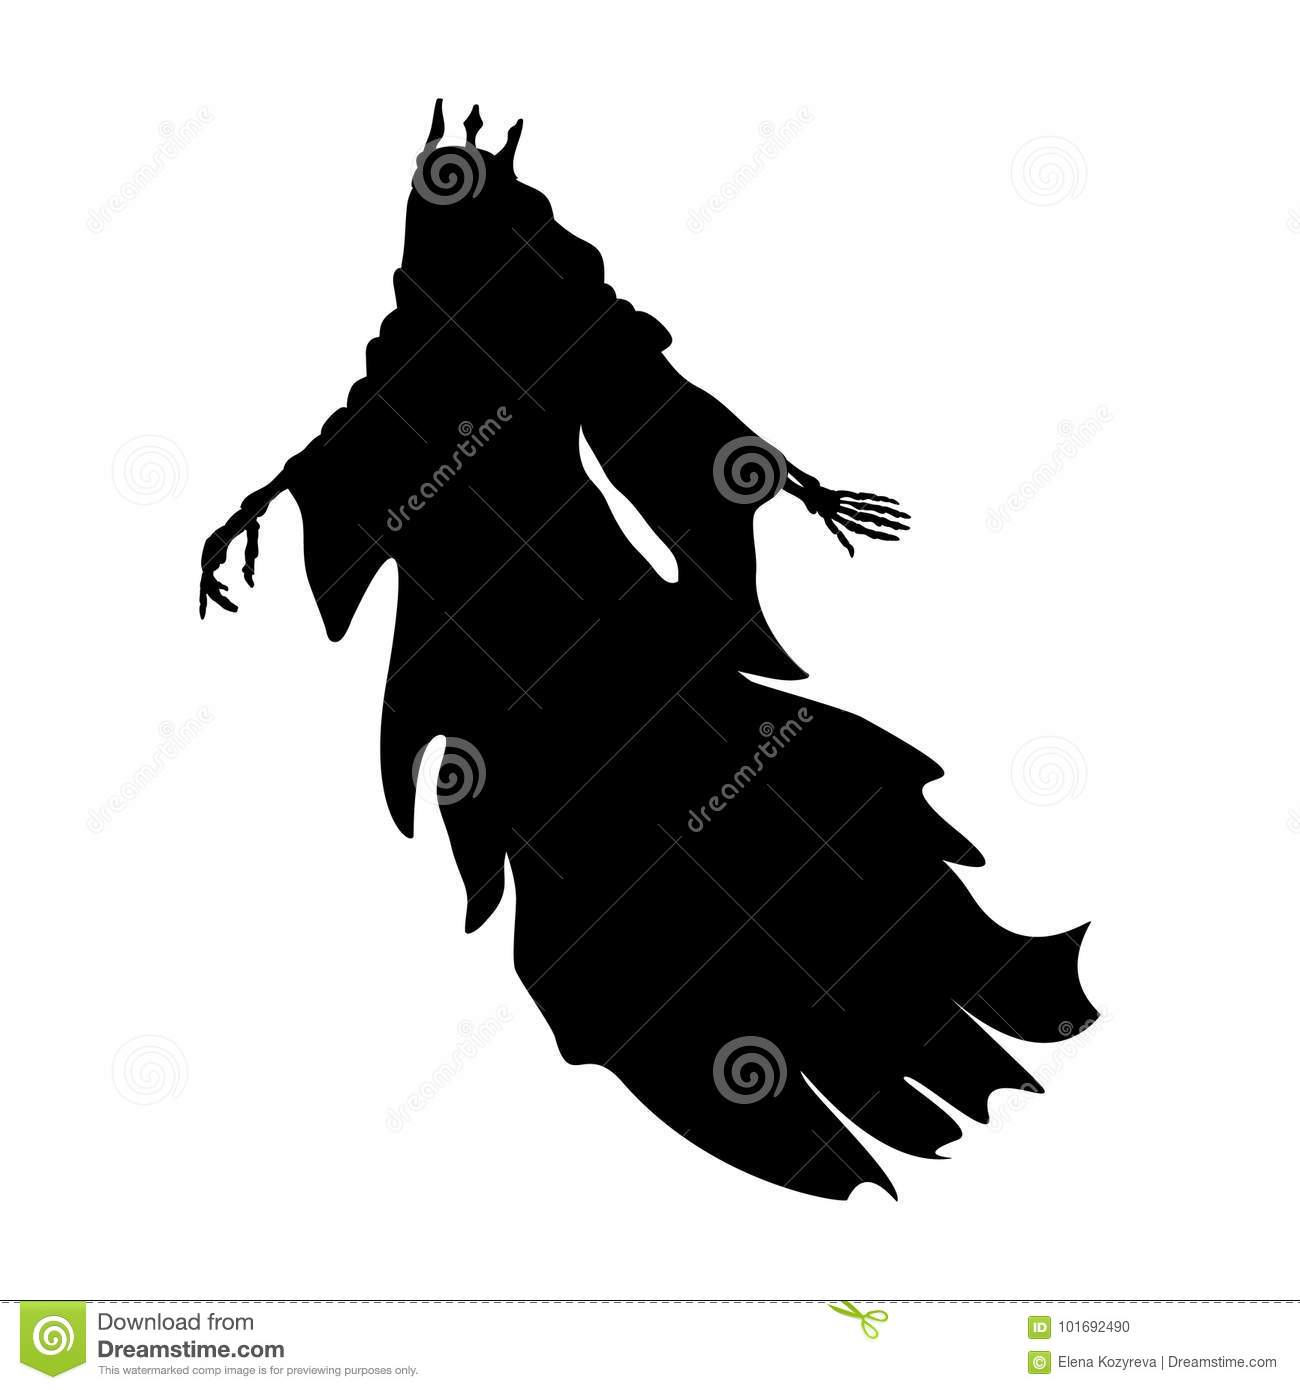 Ghost Silhouette Stock Illustrations 26 877 Ghost Silhouette Stock Illustrations Vectors Clipart Dreamstime